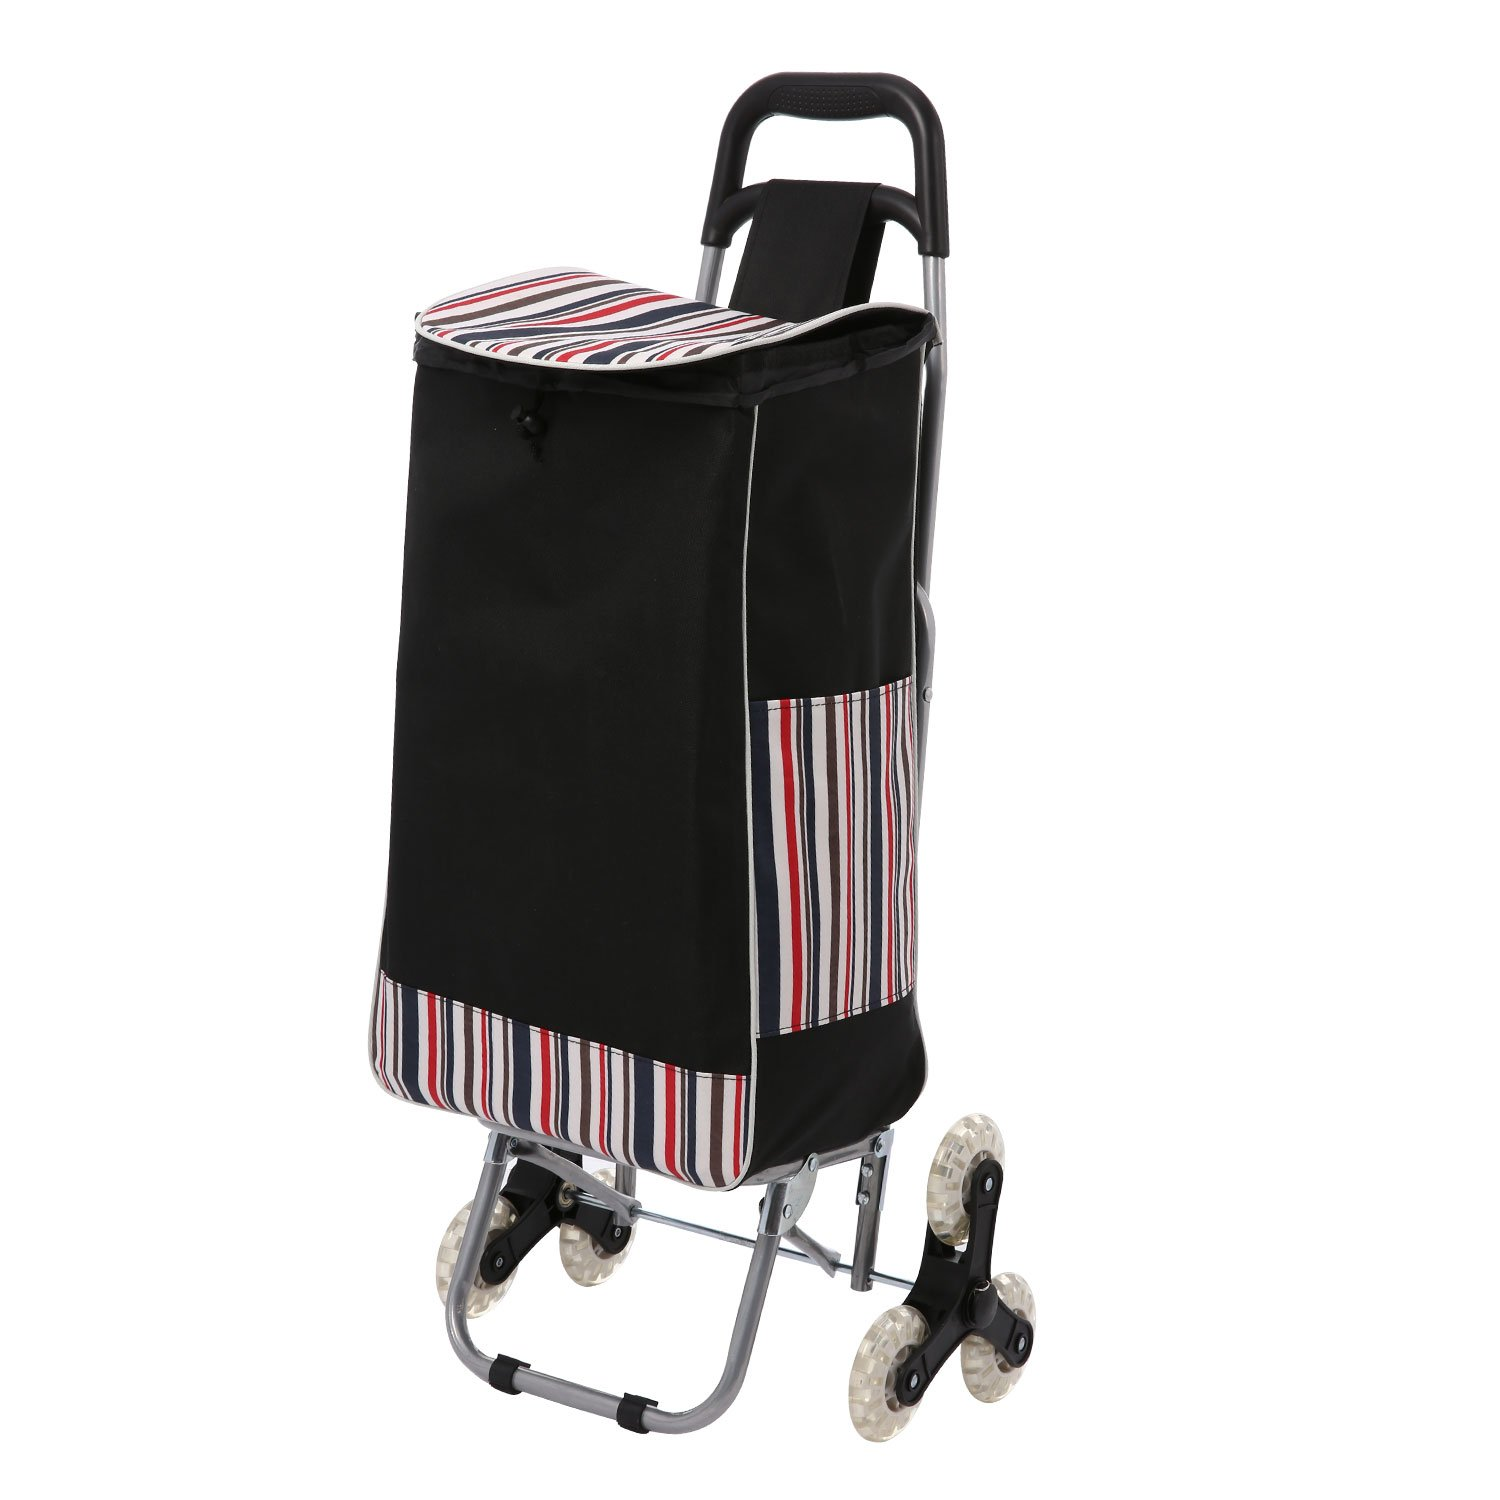 32L Stair Climbing Shopping Cart, Coocheer Upgraded Folding Utility Grocery Laundry Shopping Trolley with Tri-Wheels,Shopping Bag Size: 13 x 7.1 x 21.3 inches